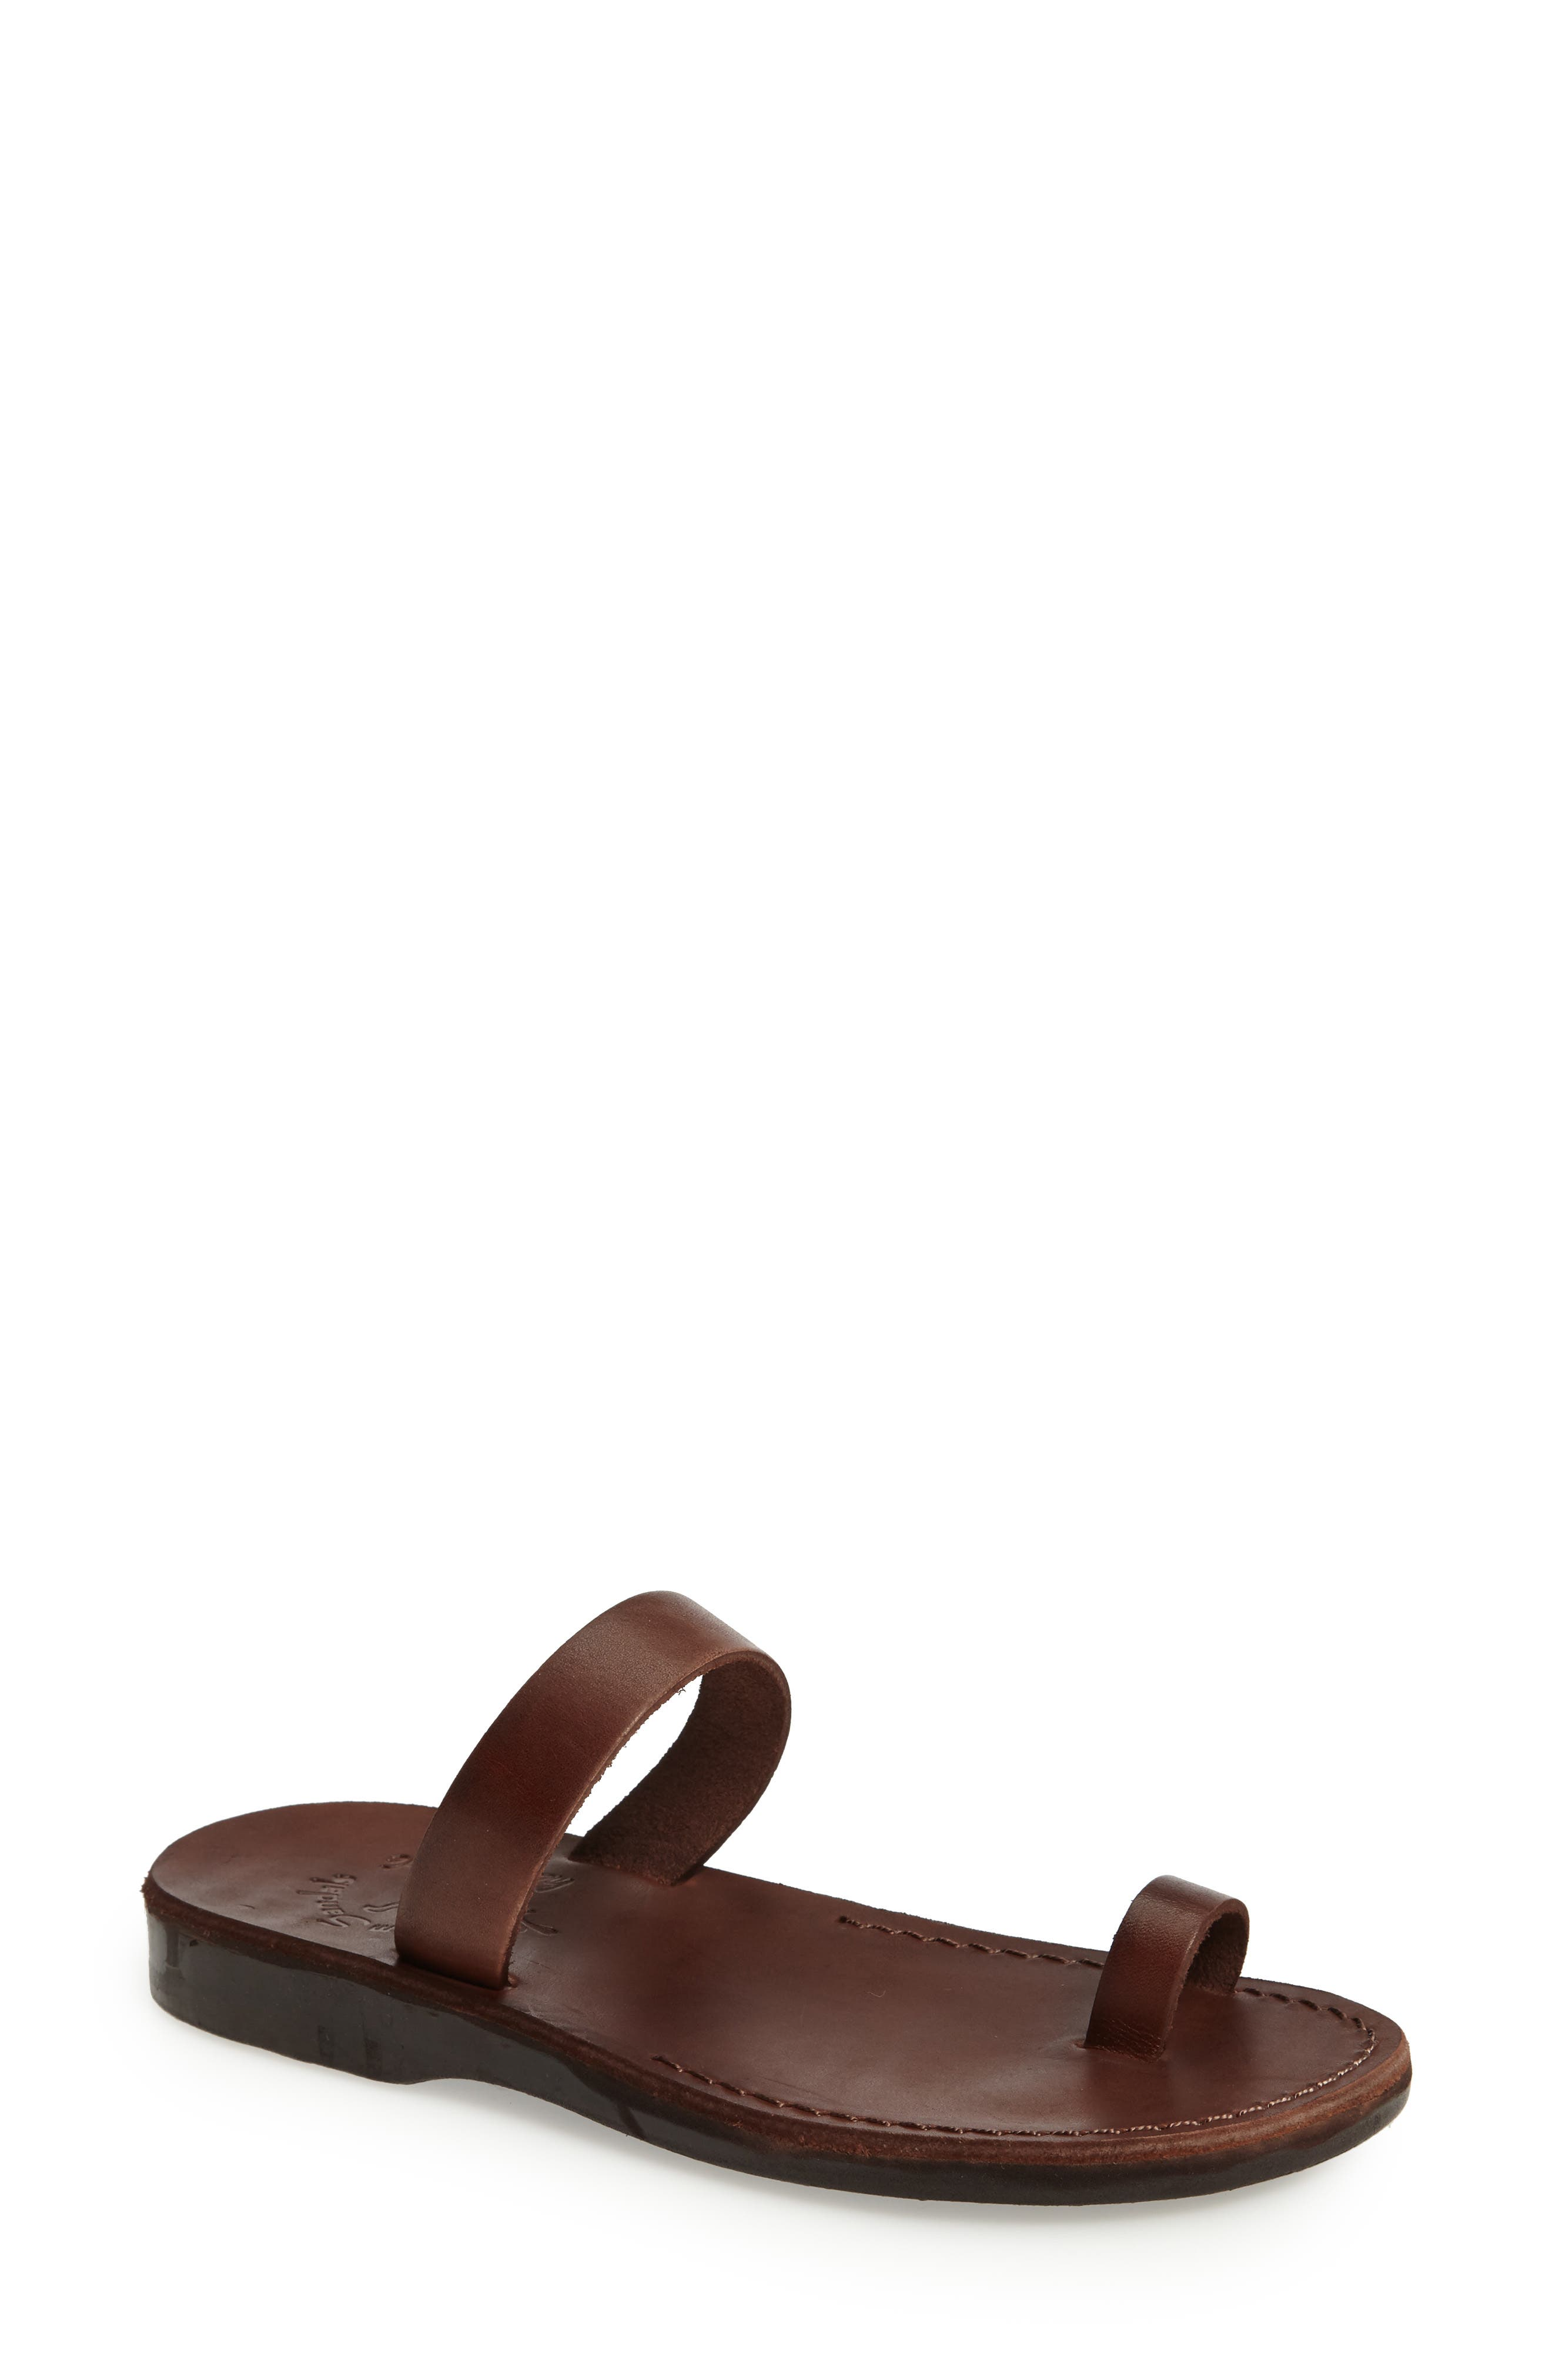 Eden Toe Loop Sandal,                         Main,                         color, BROWN LEATHER